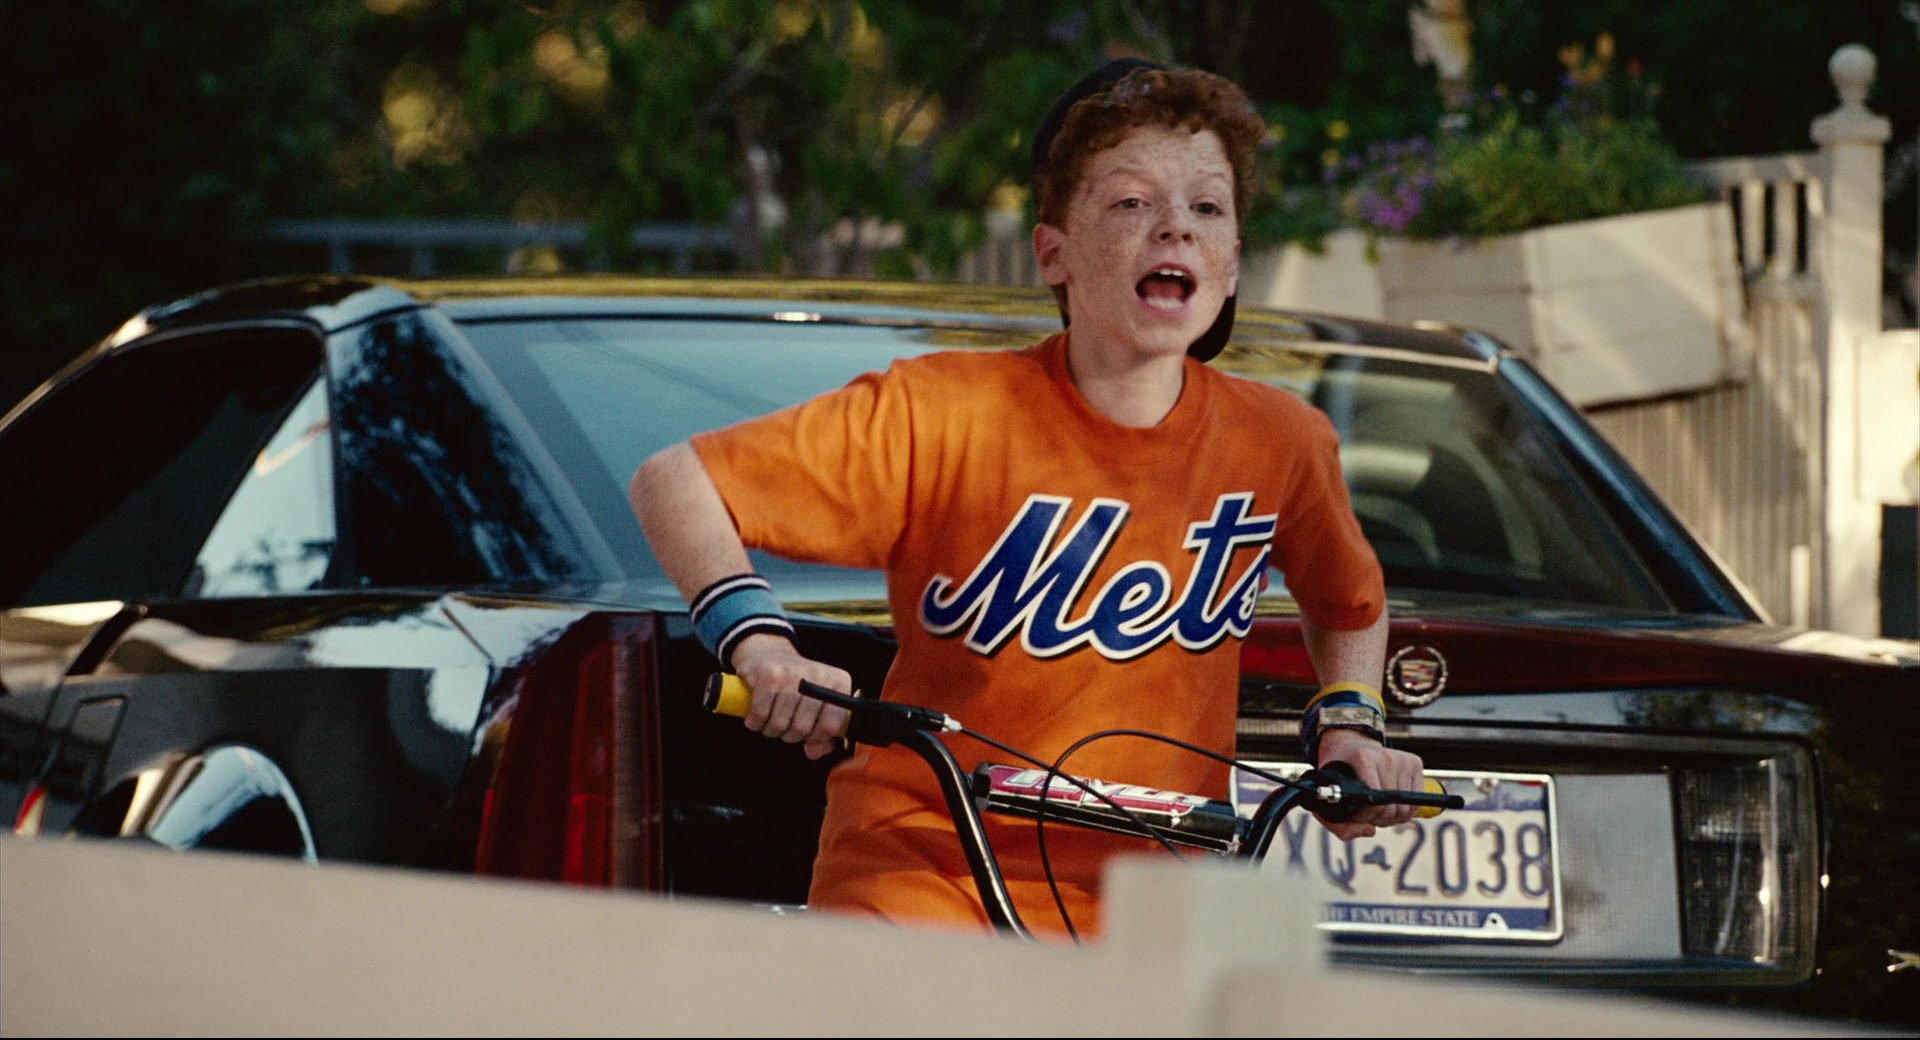 Mets T Shirt Worn By Cameron Monaghan In Click 2006